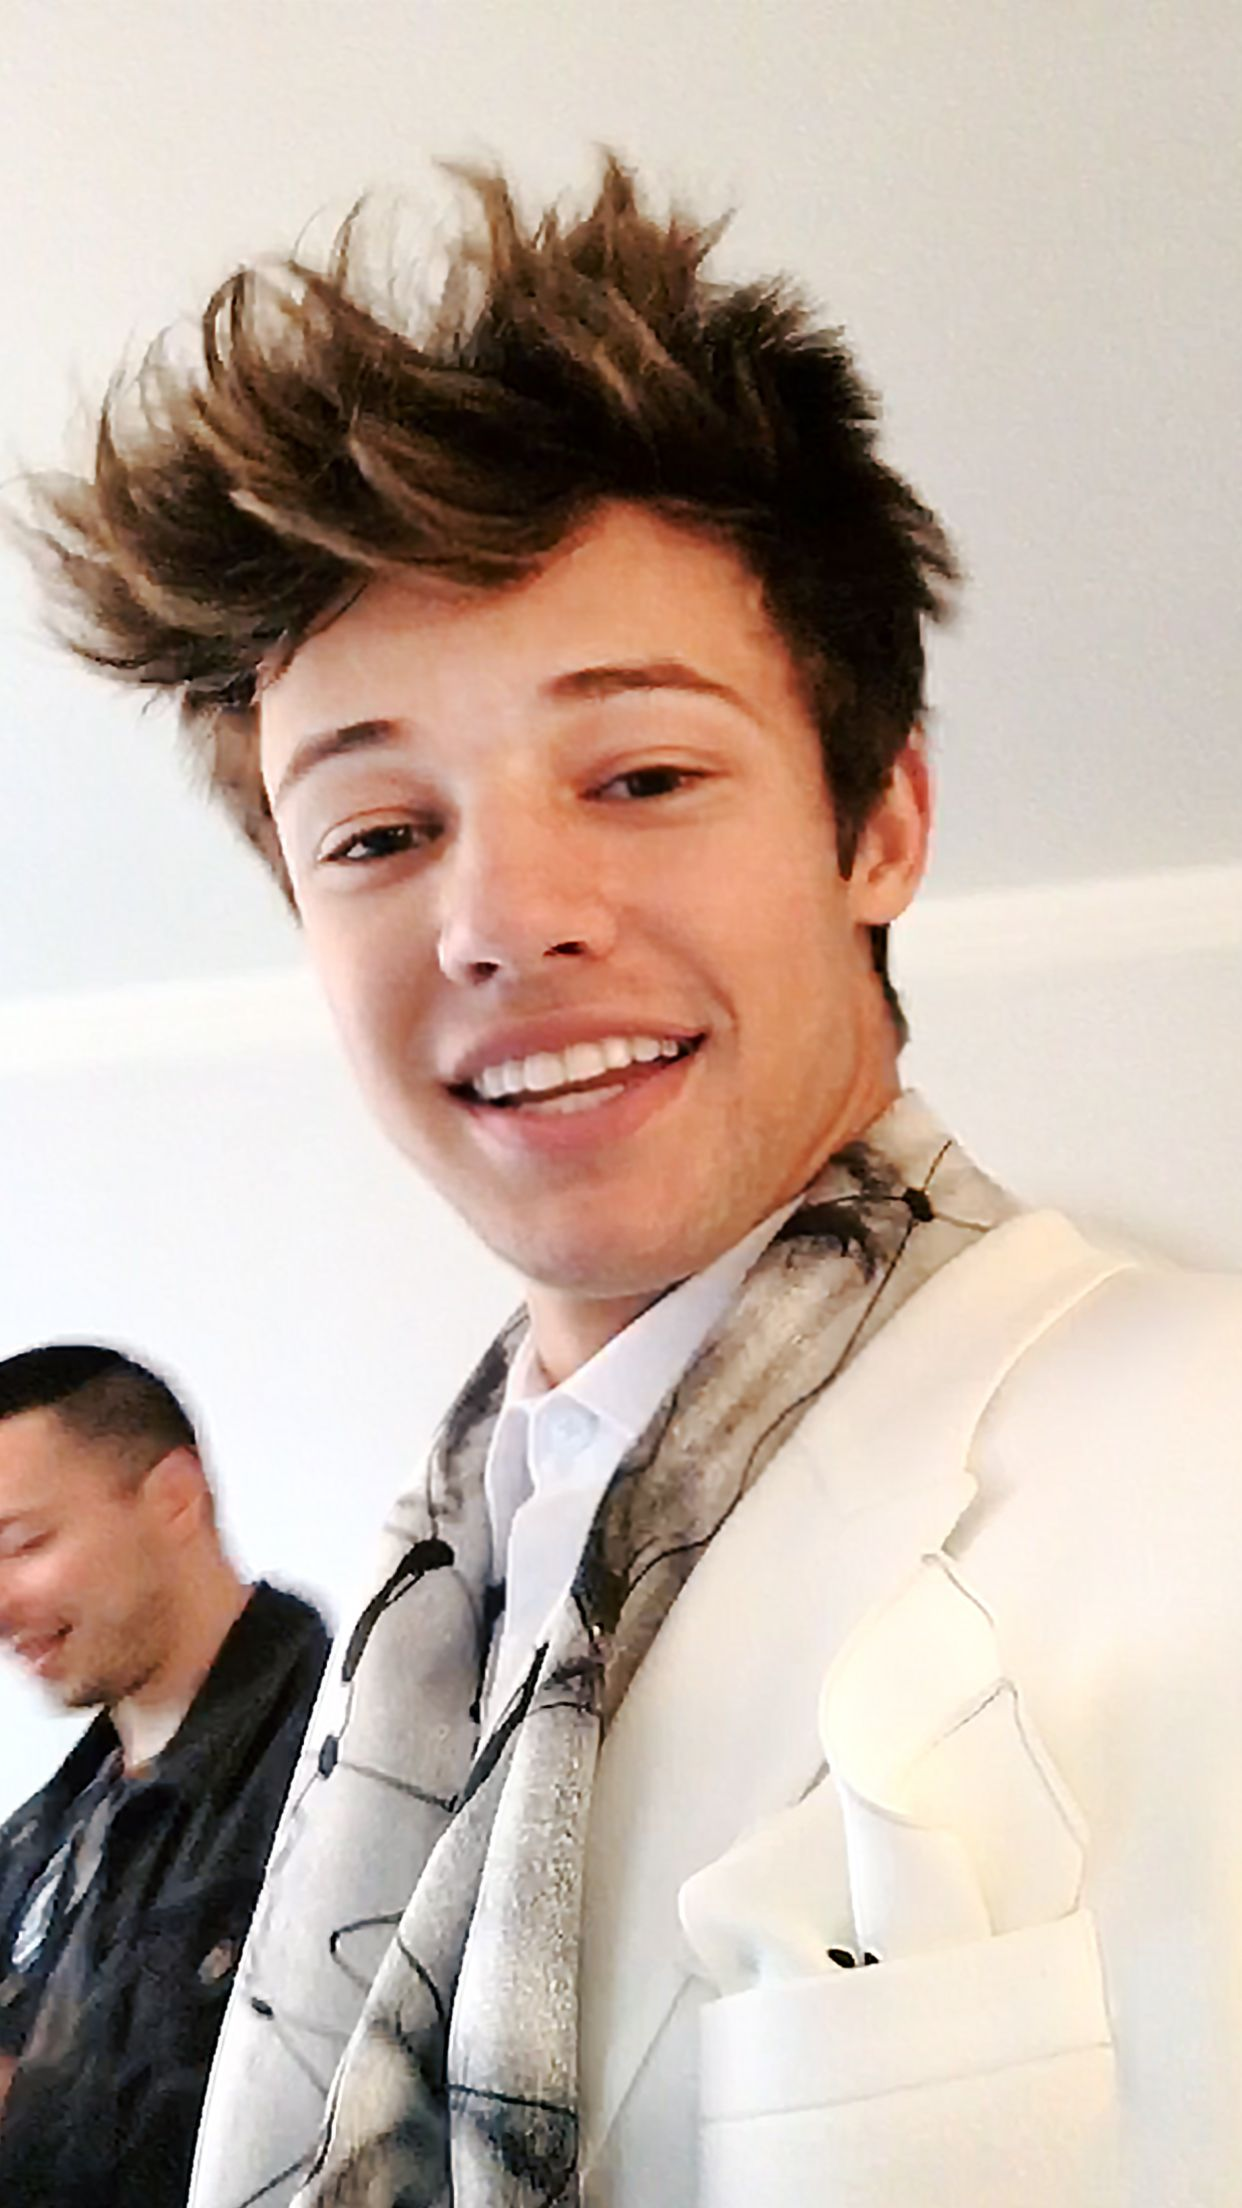 NEWS&Trends 8.5.2016 ...Cameron Dallas Gets Ready for the Met Gala With Sushi, Shaving Cream, and Some Sick Dance Moves